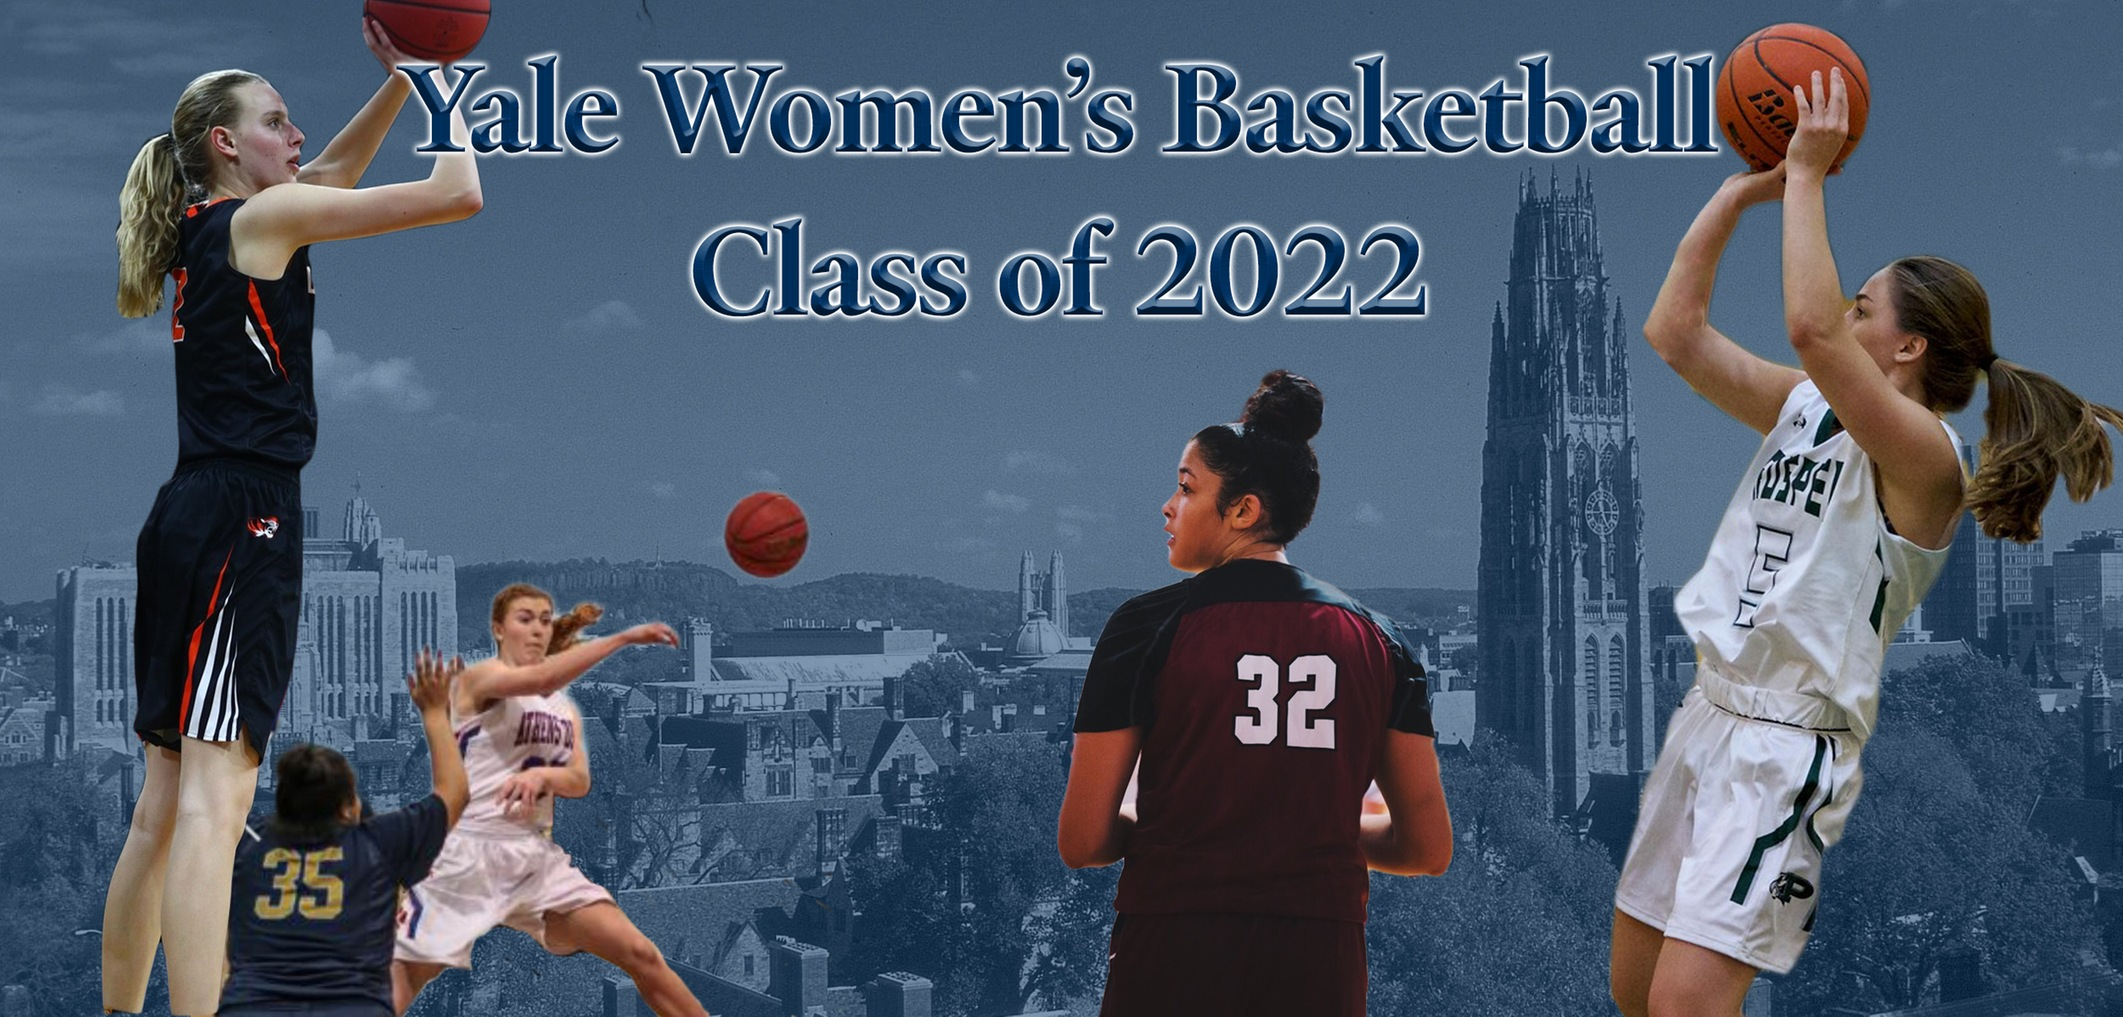 The Yale Women's Basketball Class of 2022: Camilla Emsbo, Robin Gallagher, Erin Hill and Mackenzie Hewitt.